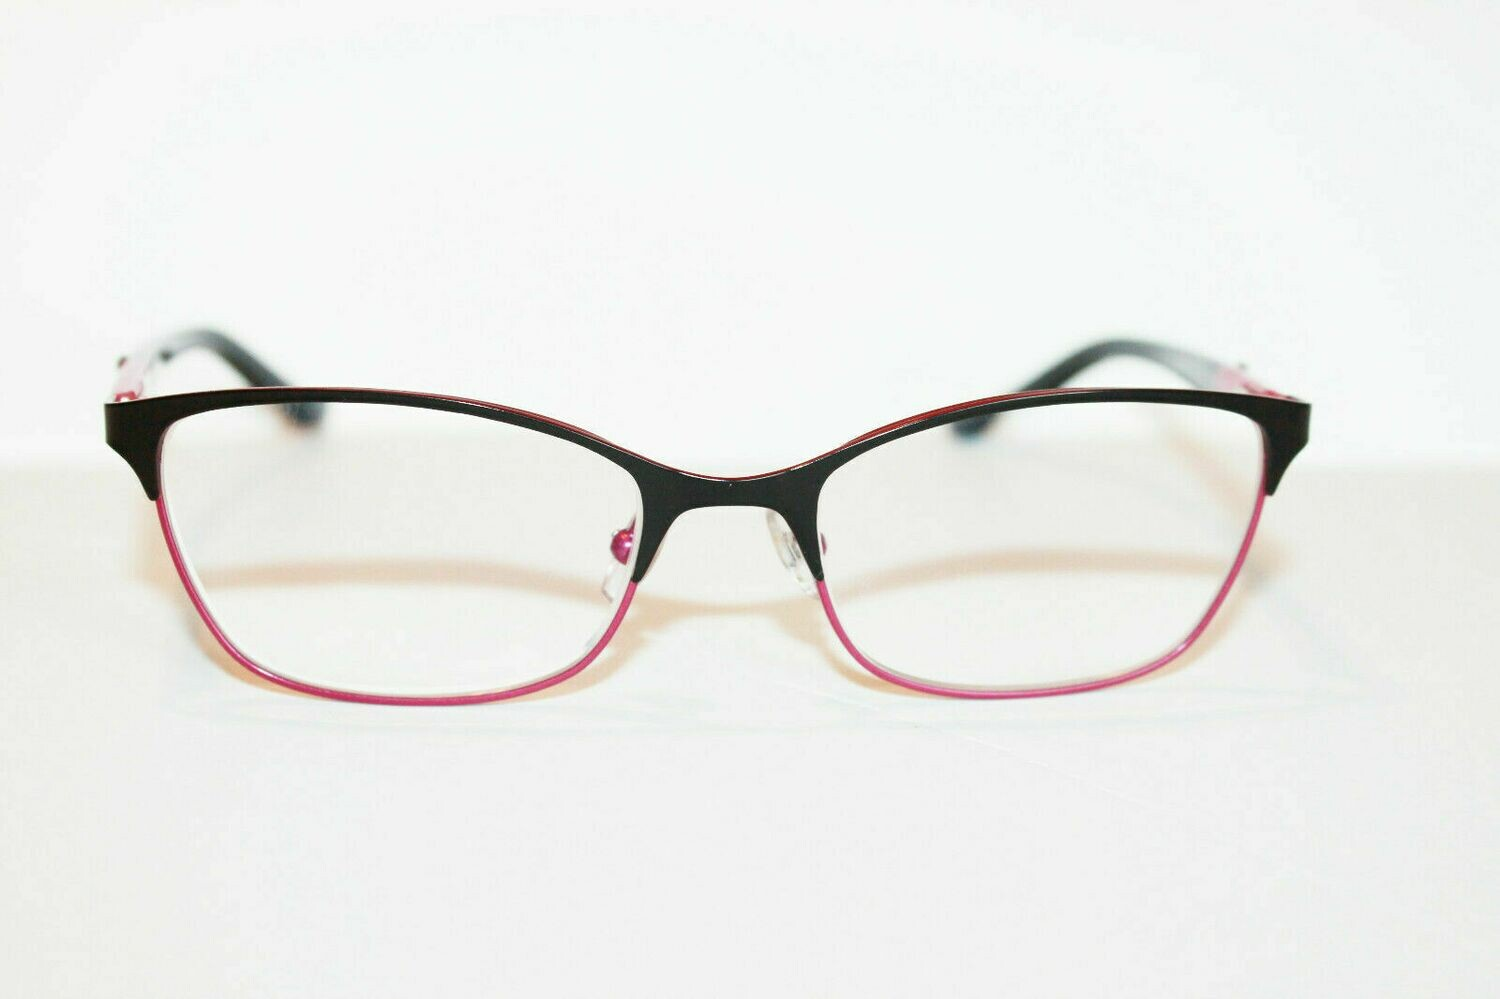 Anna Sui AS 215 Glasses Eyewear New and Authentic RX-able Color 001- Fusia